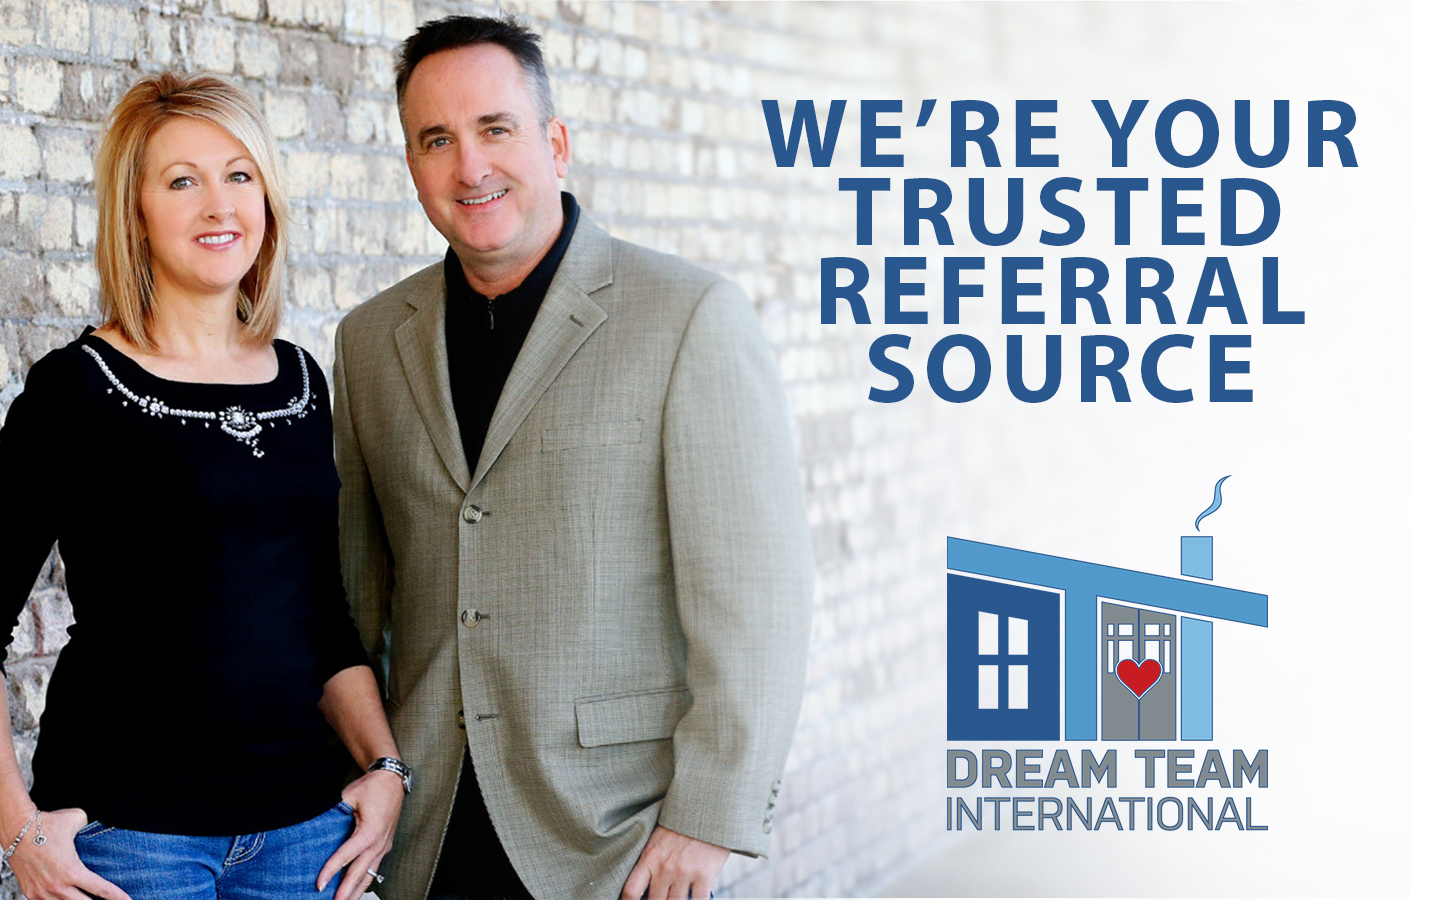 Let Us Be Your Trusted Referral Source